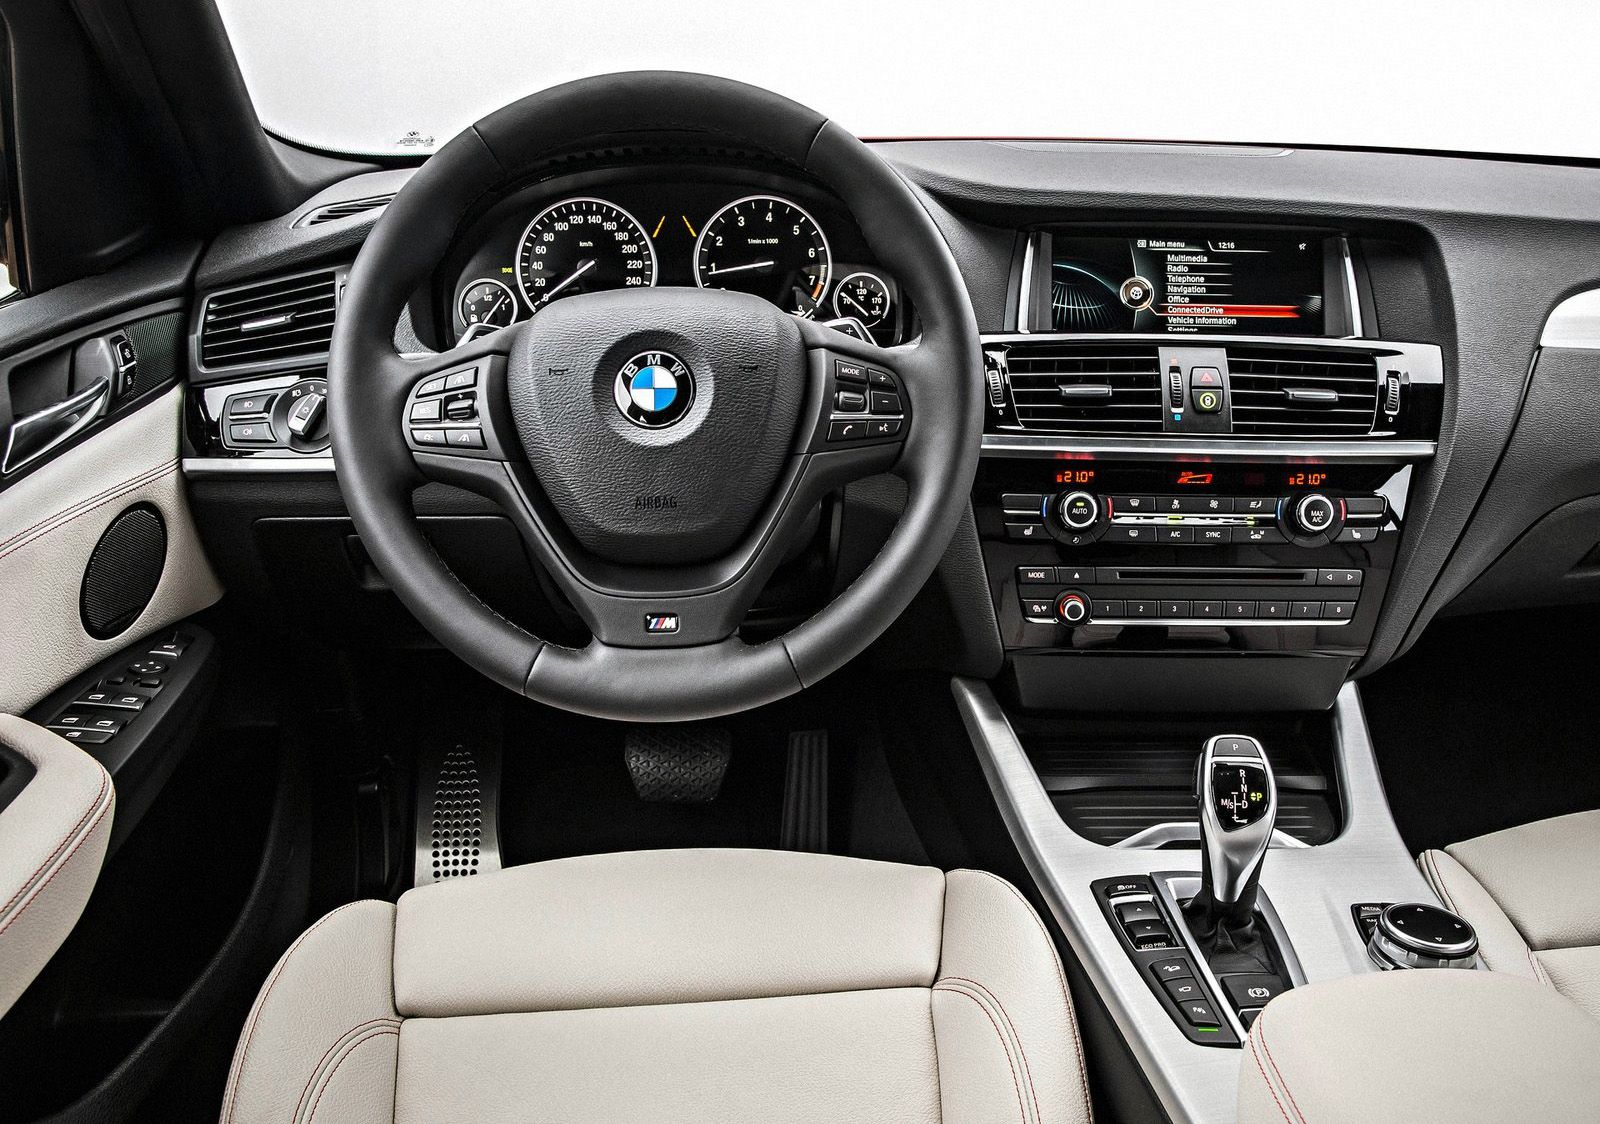 Cool Sports Activity Coupe 2015 Bmw X4 Concept Interior Pictures - Medium